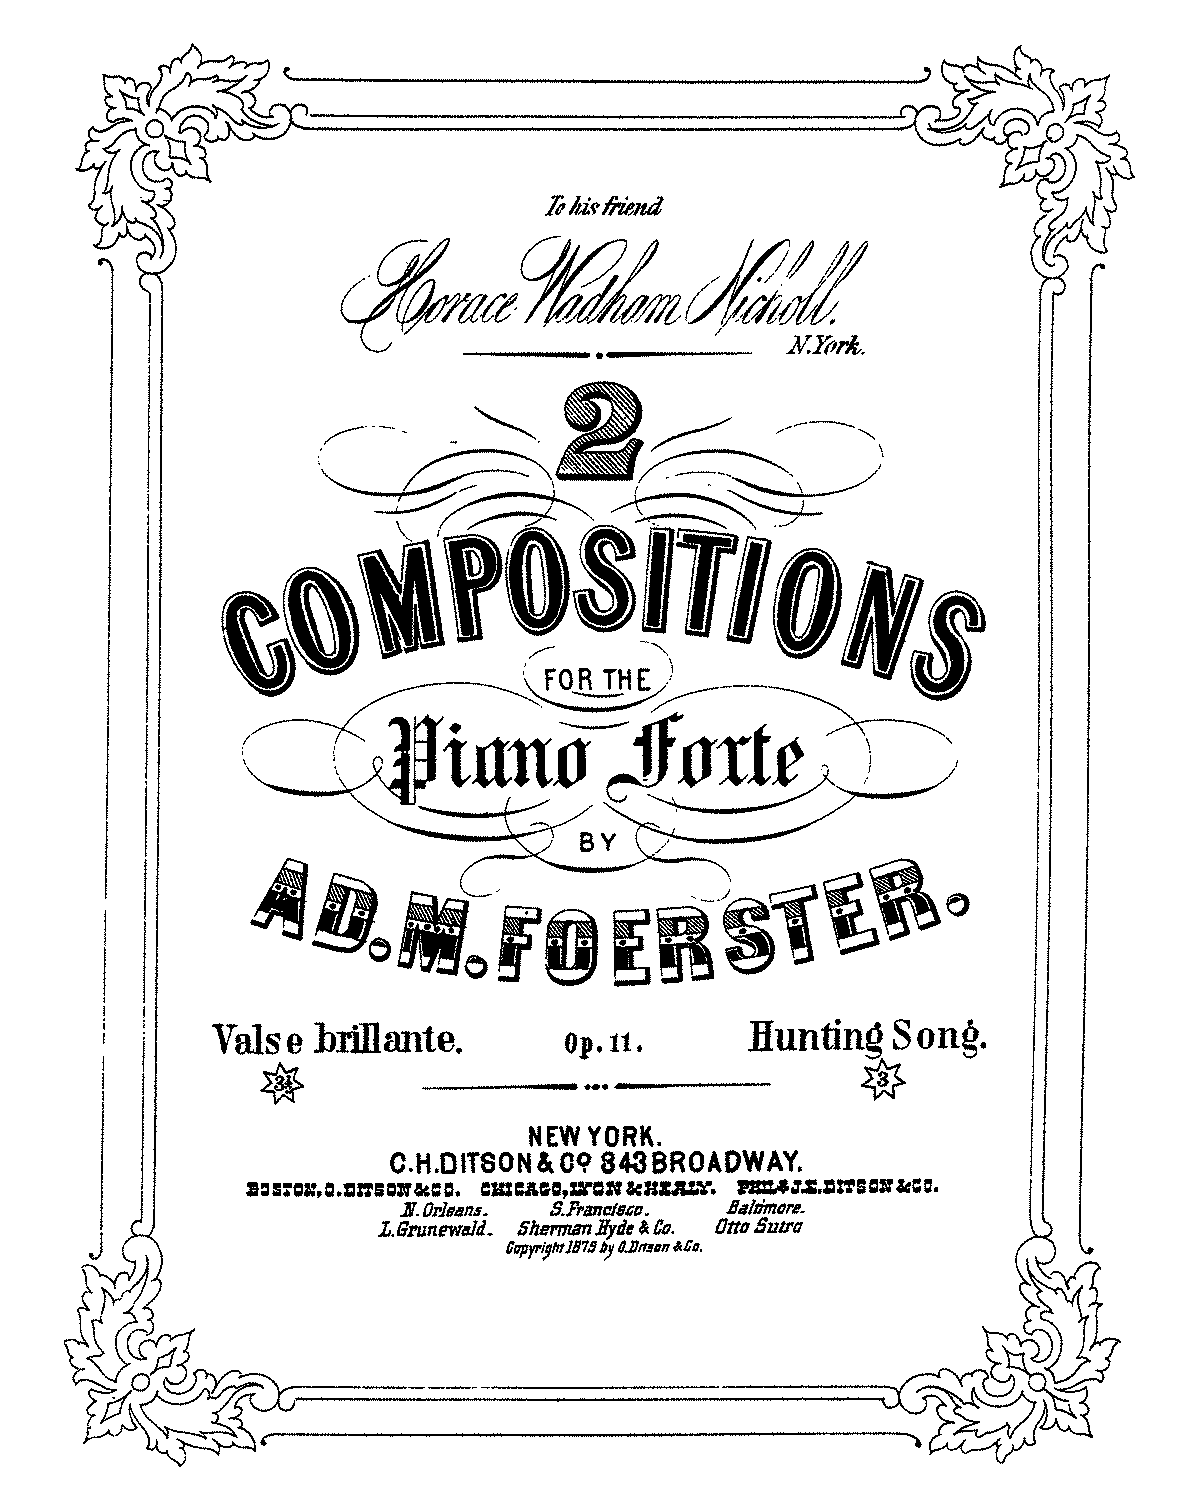 PMLP354770-AMFoerster 2 Composition, Op.11 No.1.pdf